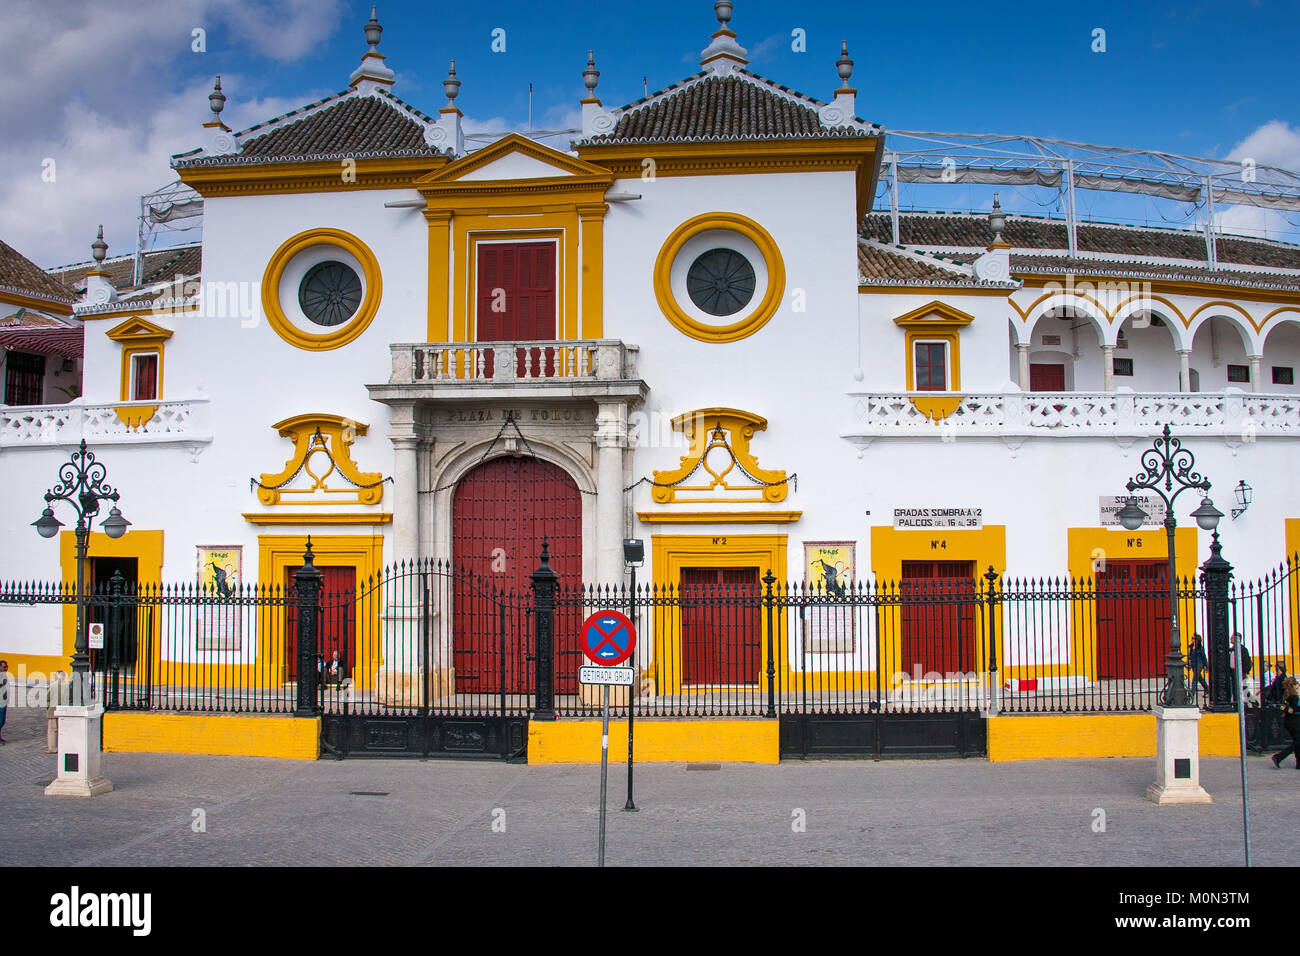 Seville, Andalusia, Spain - bullring (plaza de toros) is called the Plaza de Toros de la Real Maestranza de Caballería - Stock Image